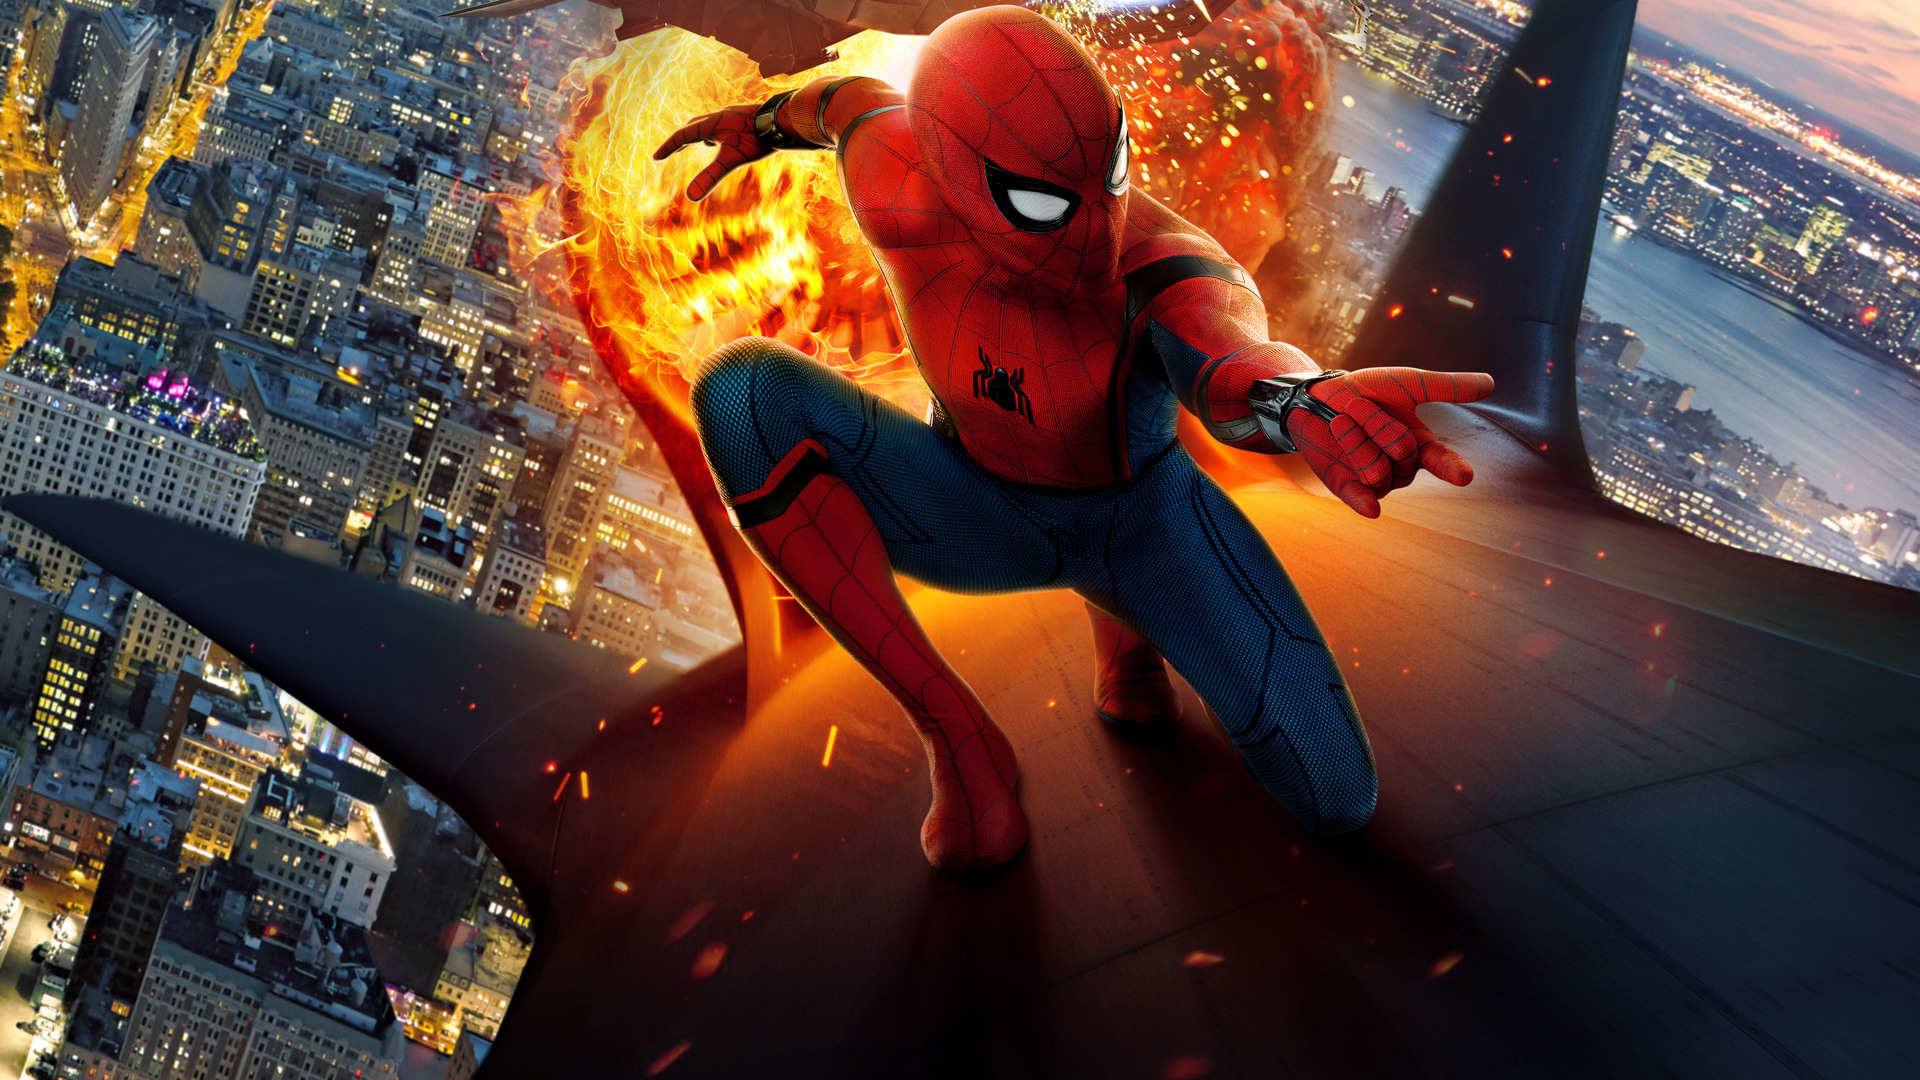 spiderman-homecoming-new-movie-poster-chinese-kh.jpg